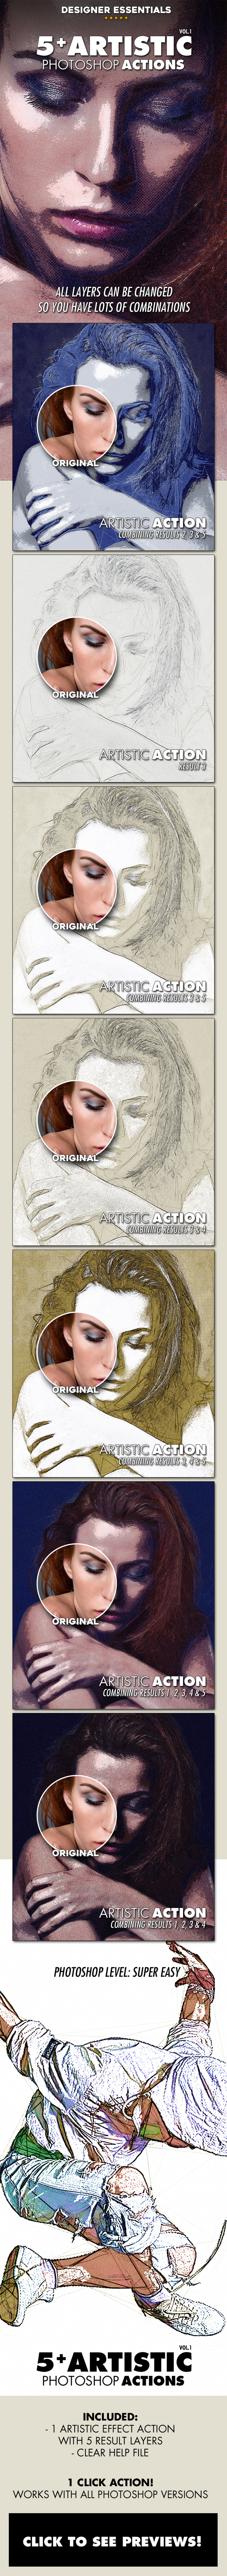 GraphicRiver 5 Artistic Effect Actions 20622686